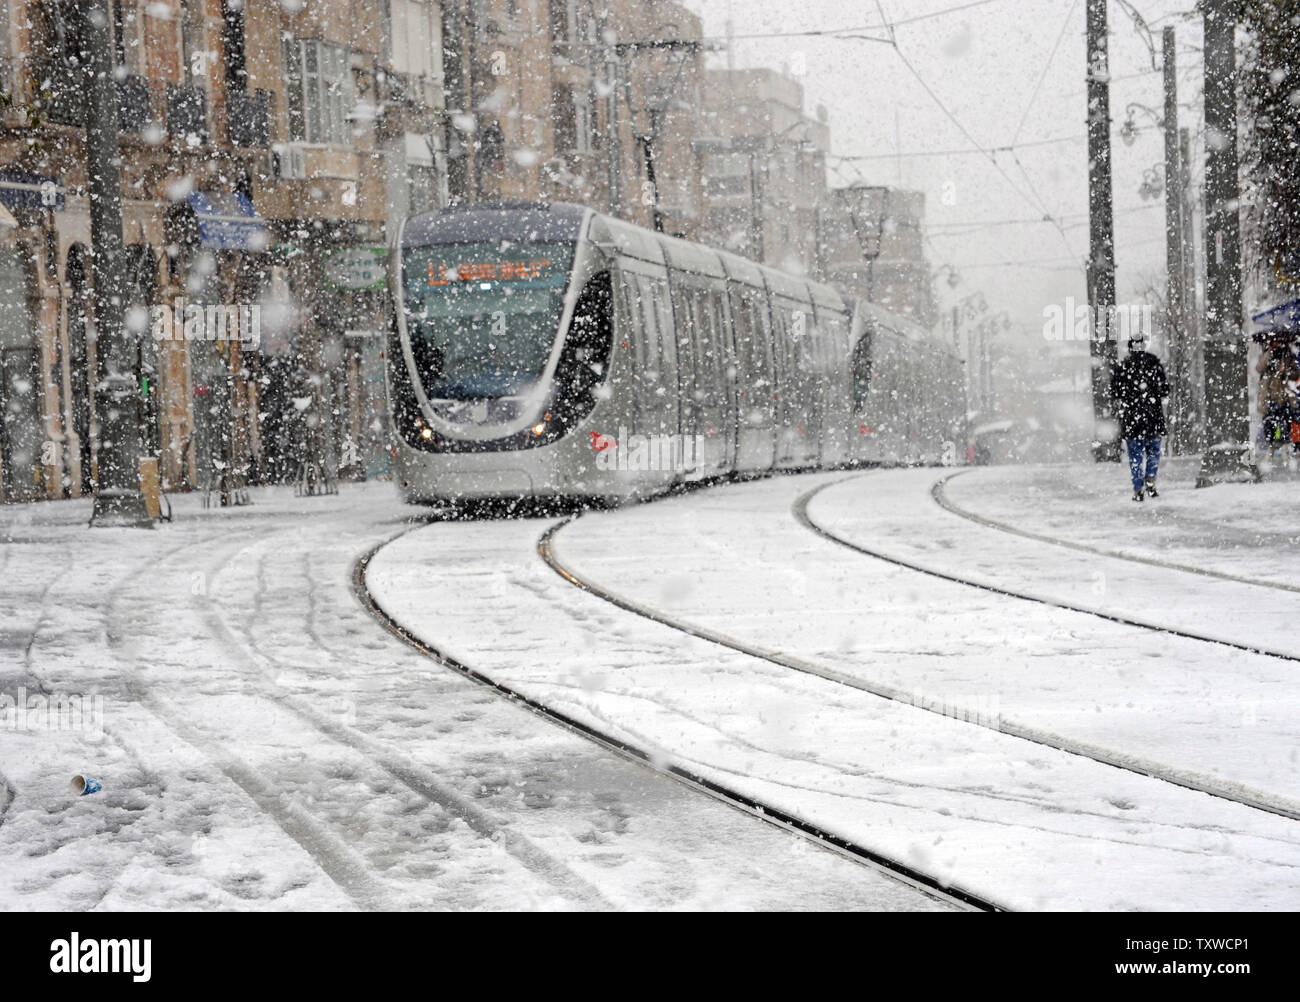 The light rail train runs on Jaffa Road in central Jerusalem during a rare winter snow storm, March 2, 2012. Residents of Jerusalem woke to 1.575 inches of snow in the first snow fall in Jerusalem in more than two years.  UPI/Debbie Hill - Stock Image